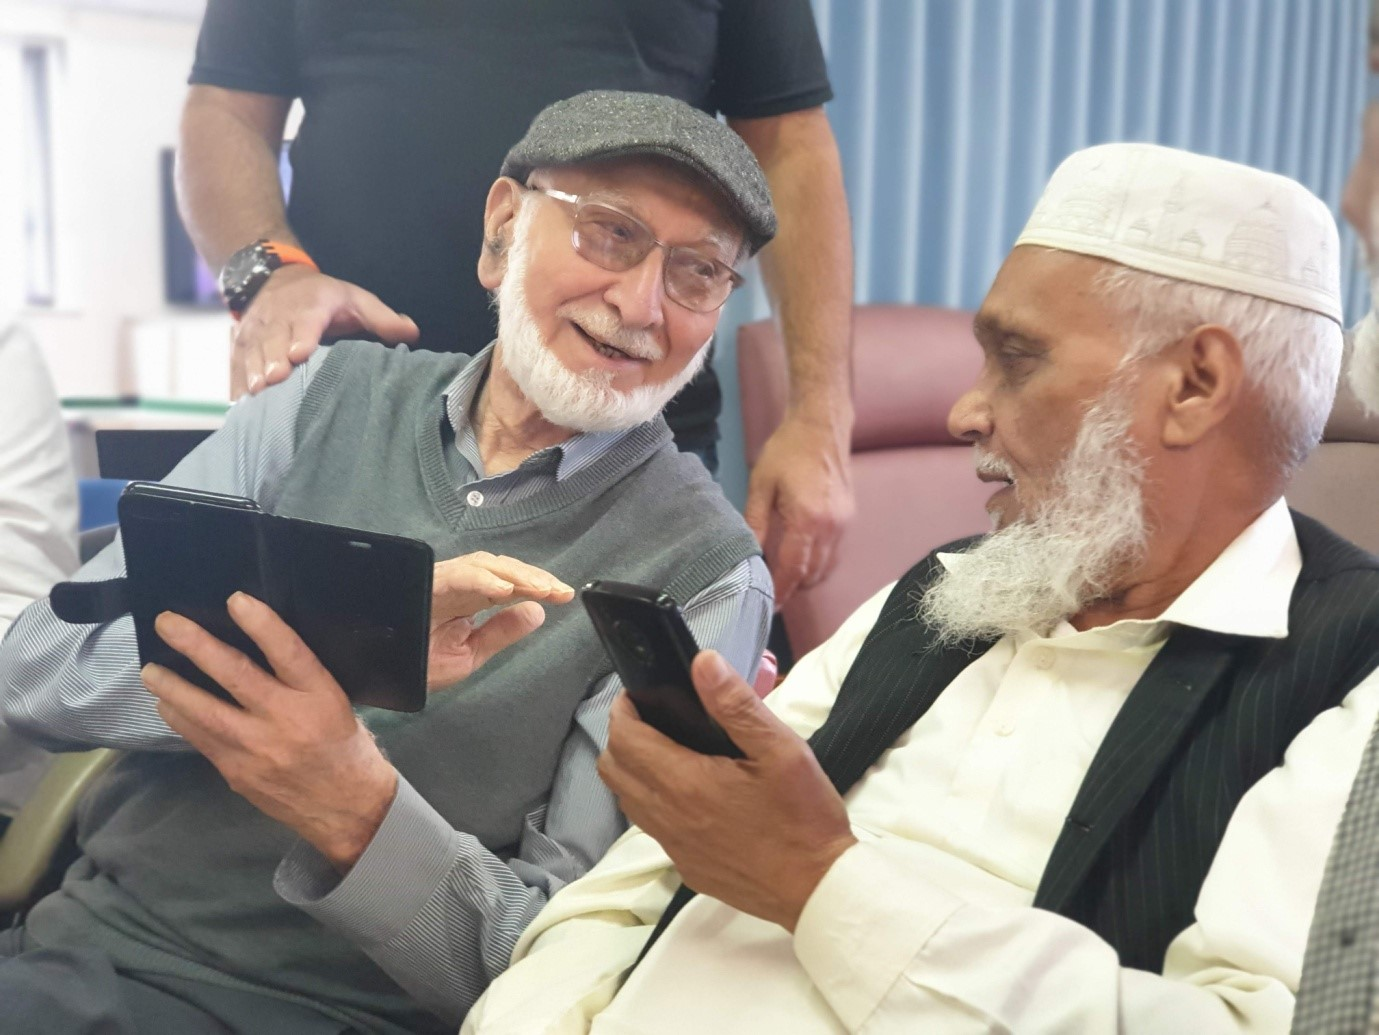 Two people in Jinnah Centre, chatting together and holding their phones